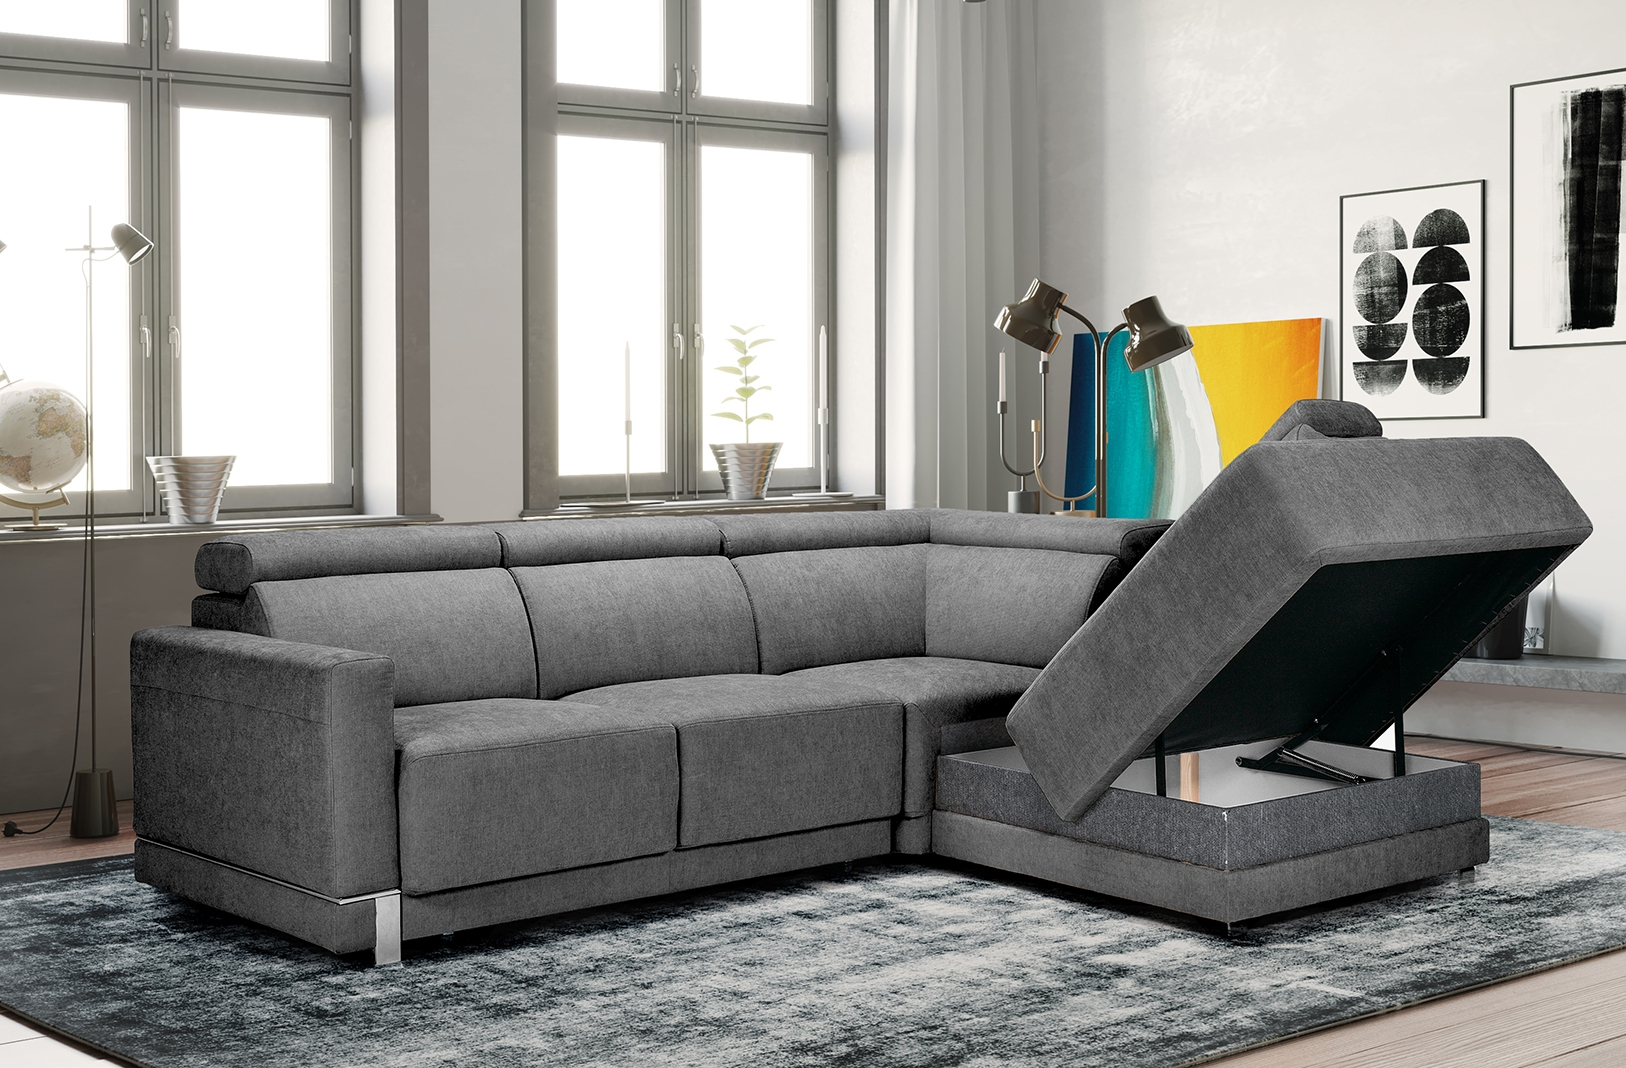 Marburg Sectional Sofa – Nordholtz Furniture Throughout Sectional Sofas (View 1 of 15)